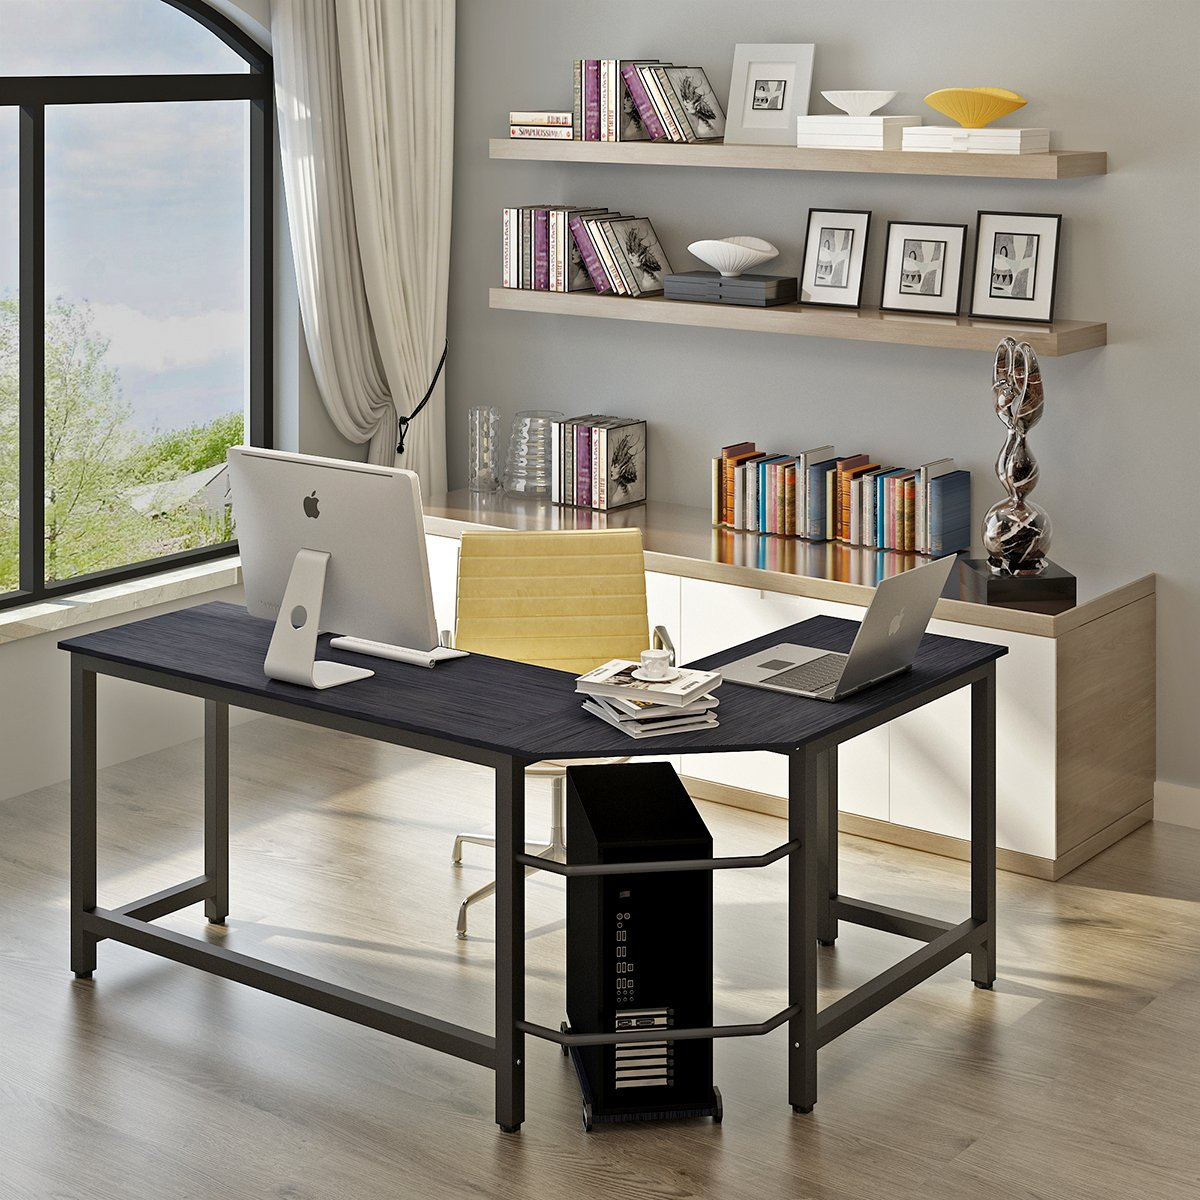 L Shaped Office Desk,Home Corner Desk, Computer Office PC Laptop Study Table Workstation Home Office Wood & Metal